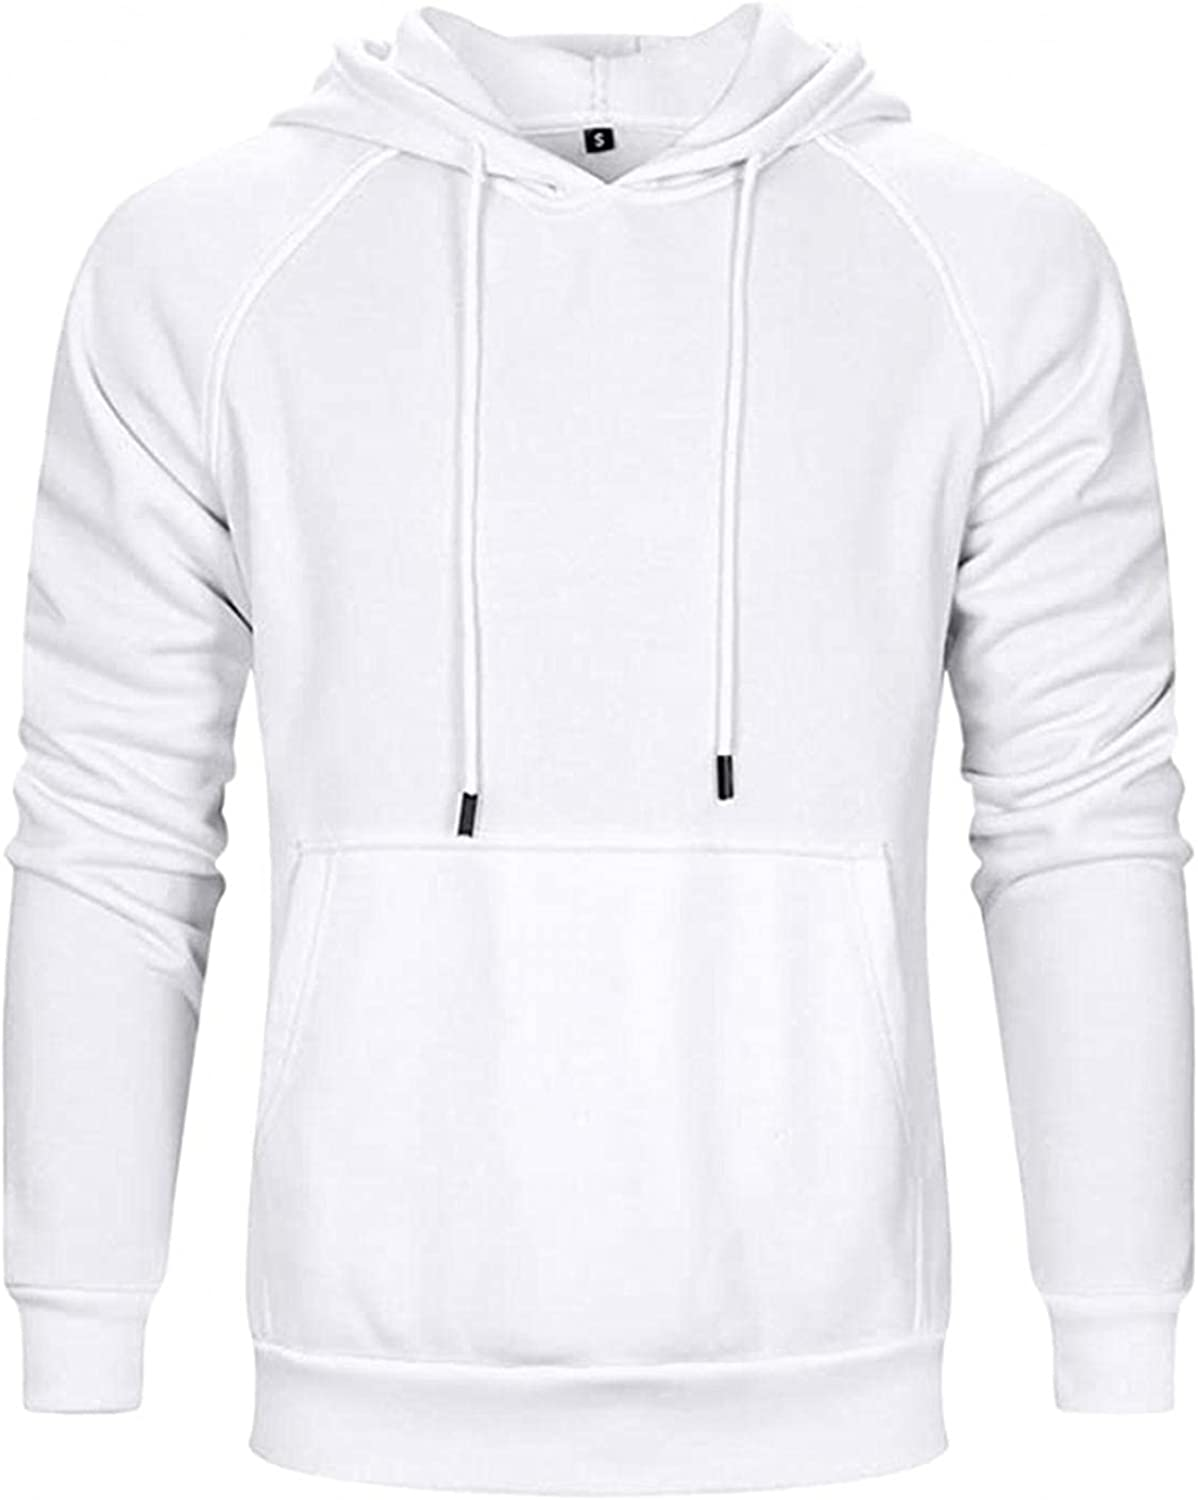 Men's Hoodies Pullover, Mens Autumn Winter Casual Long Sleeve Solid Soft Sports Outwear Hooded Sweatshirts with Pockets